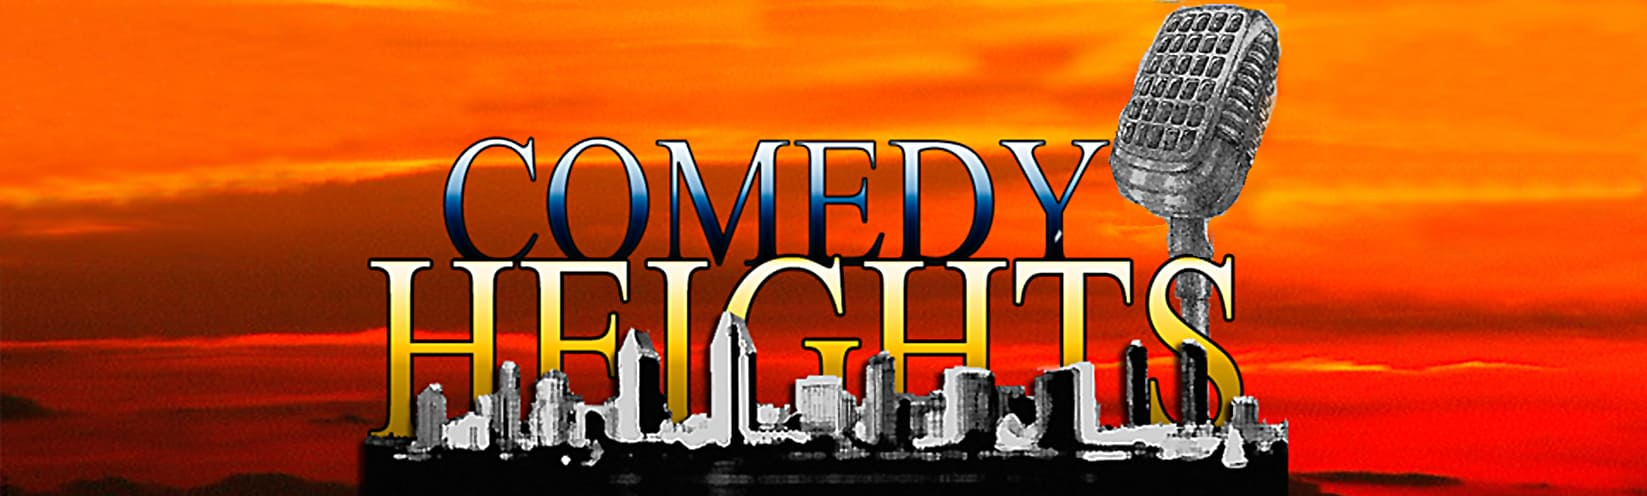 Comedy Heights